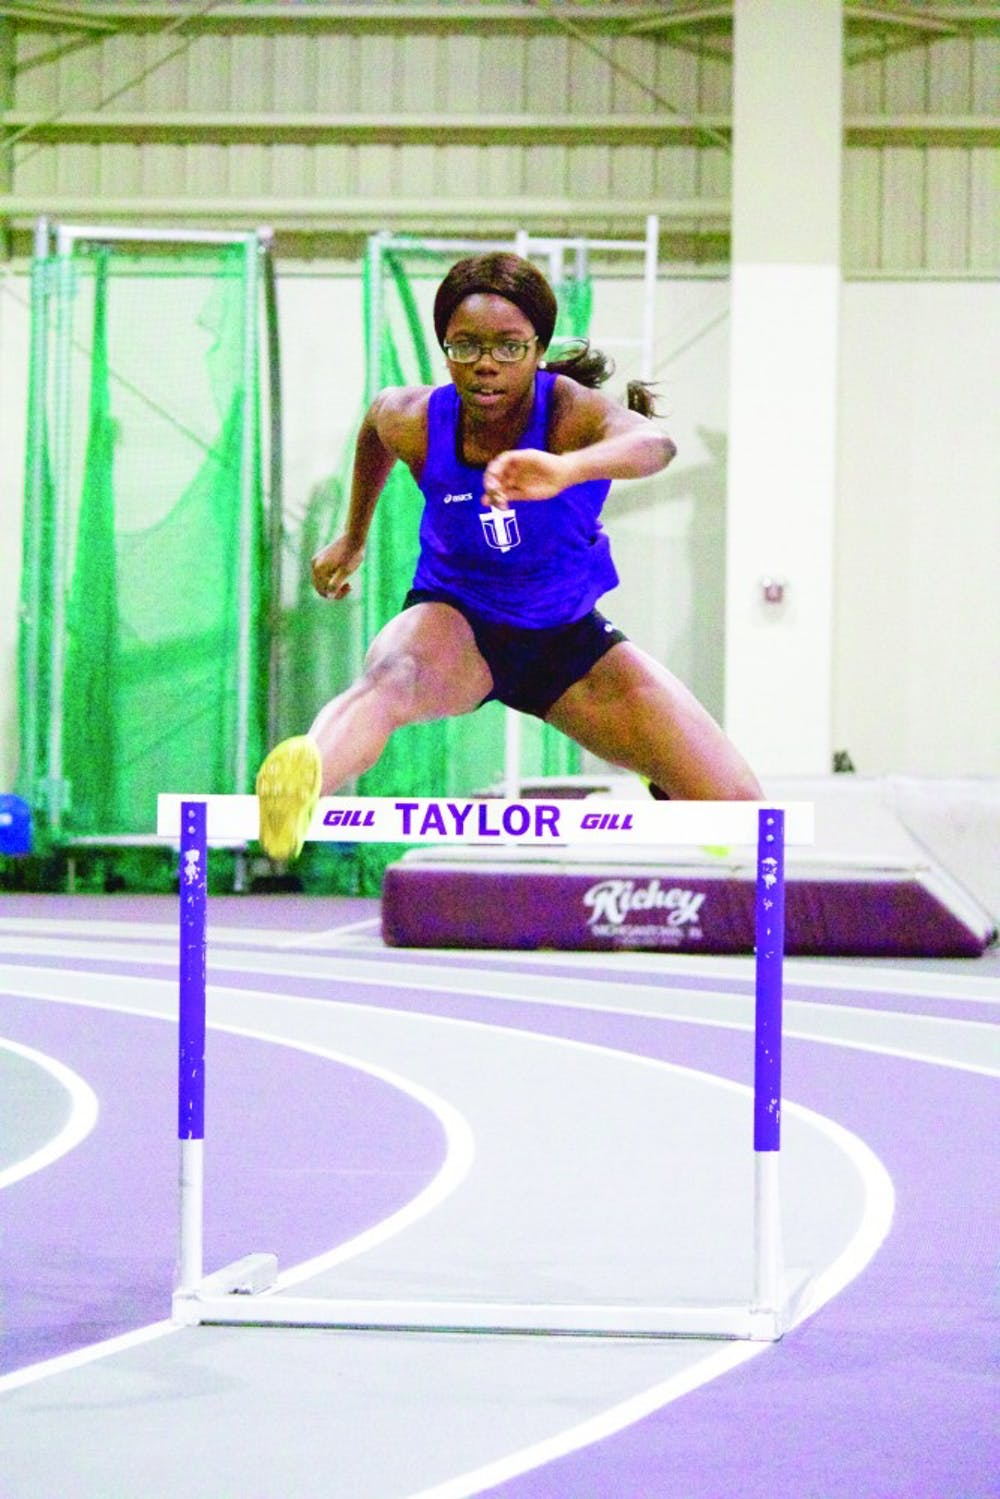 Track and field is showing off their talent